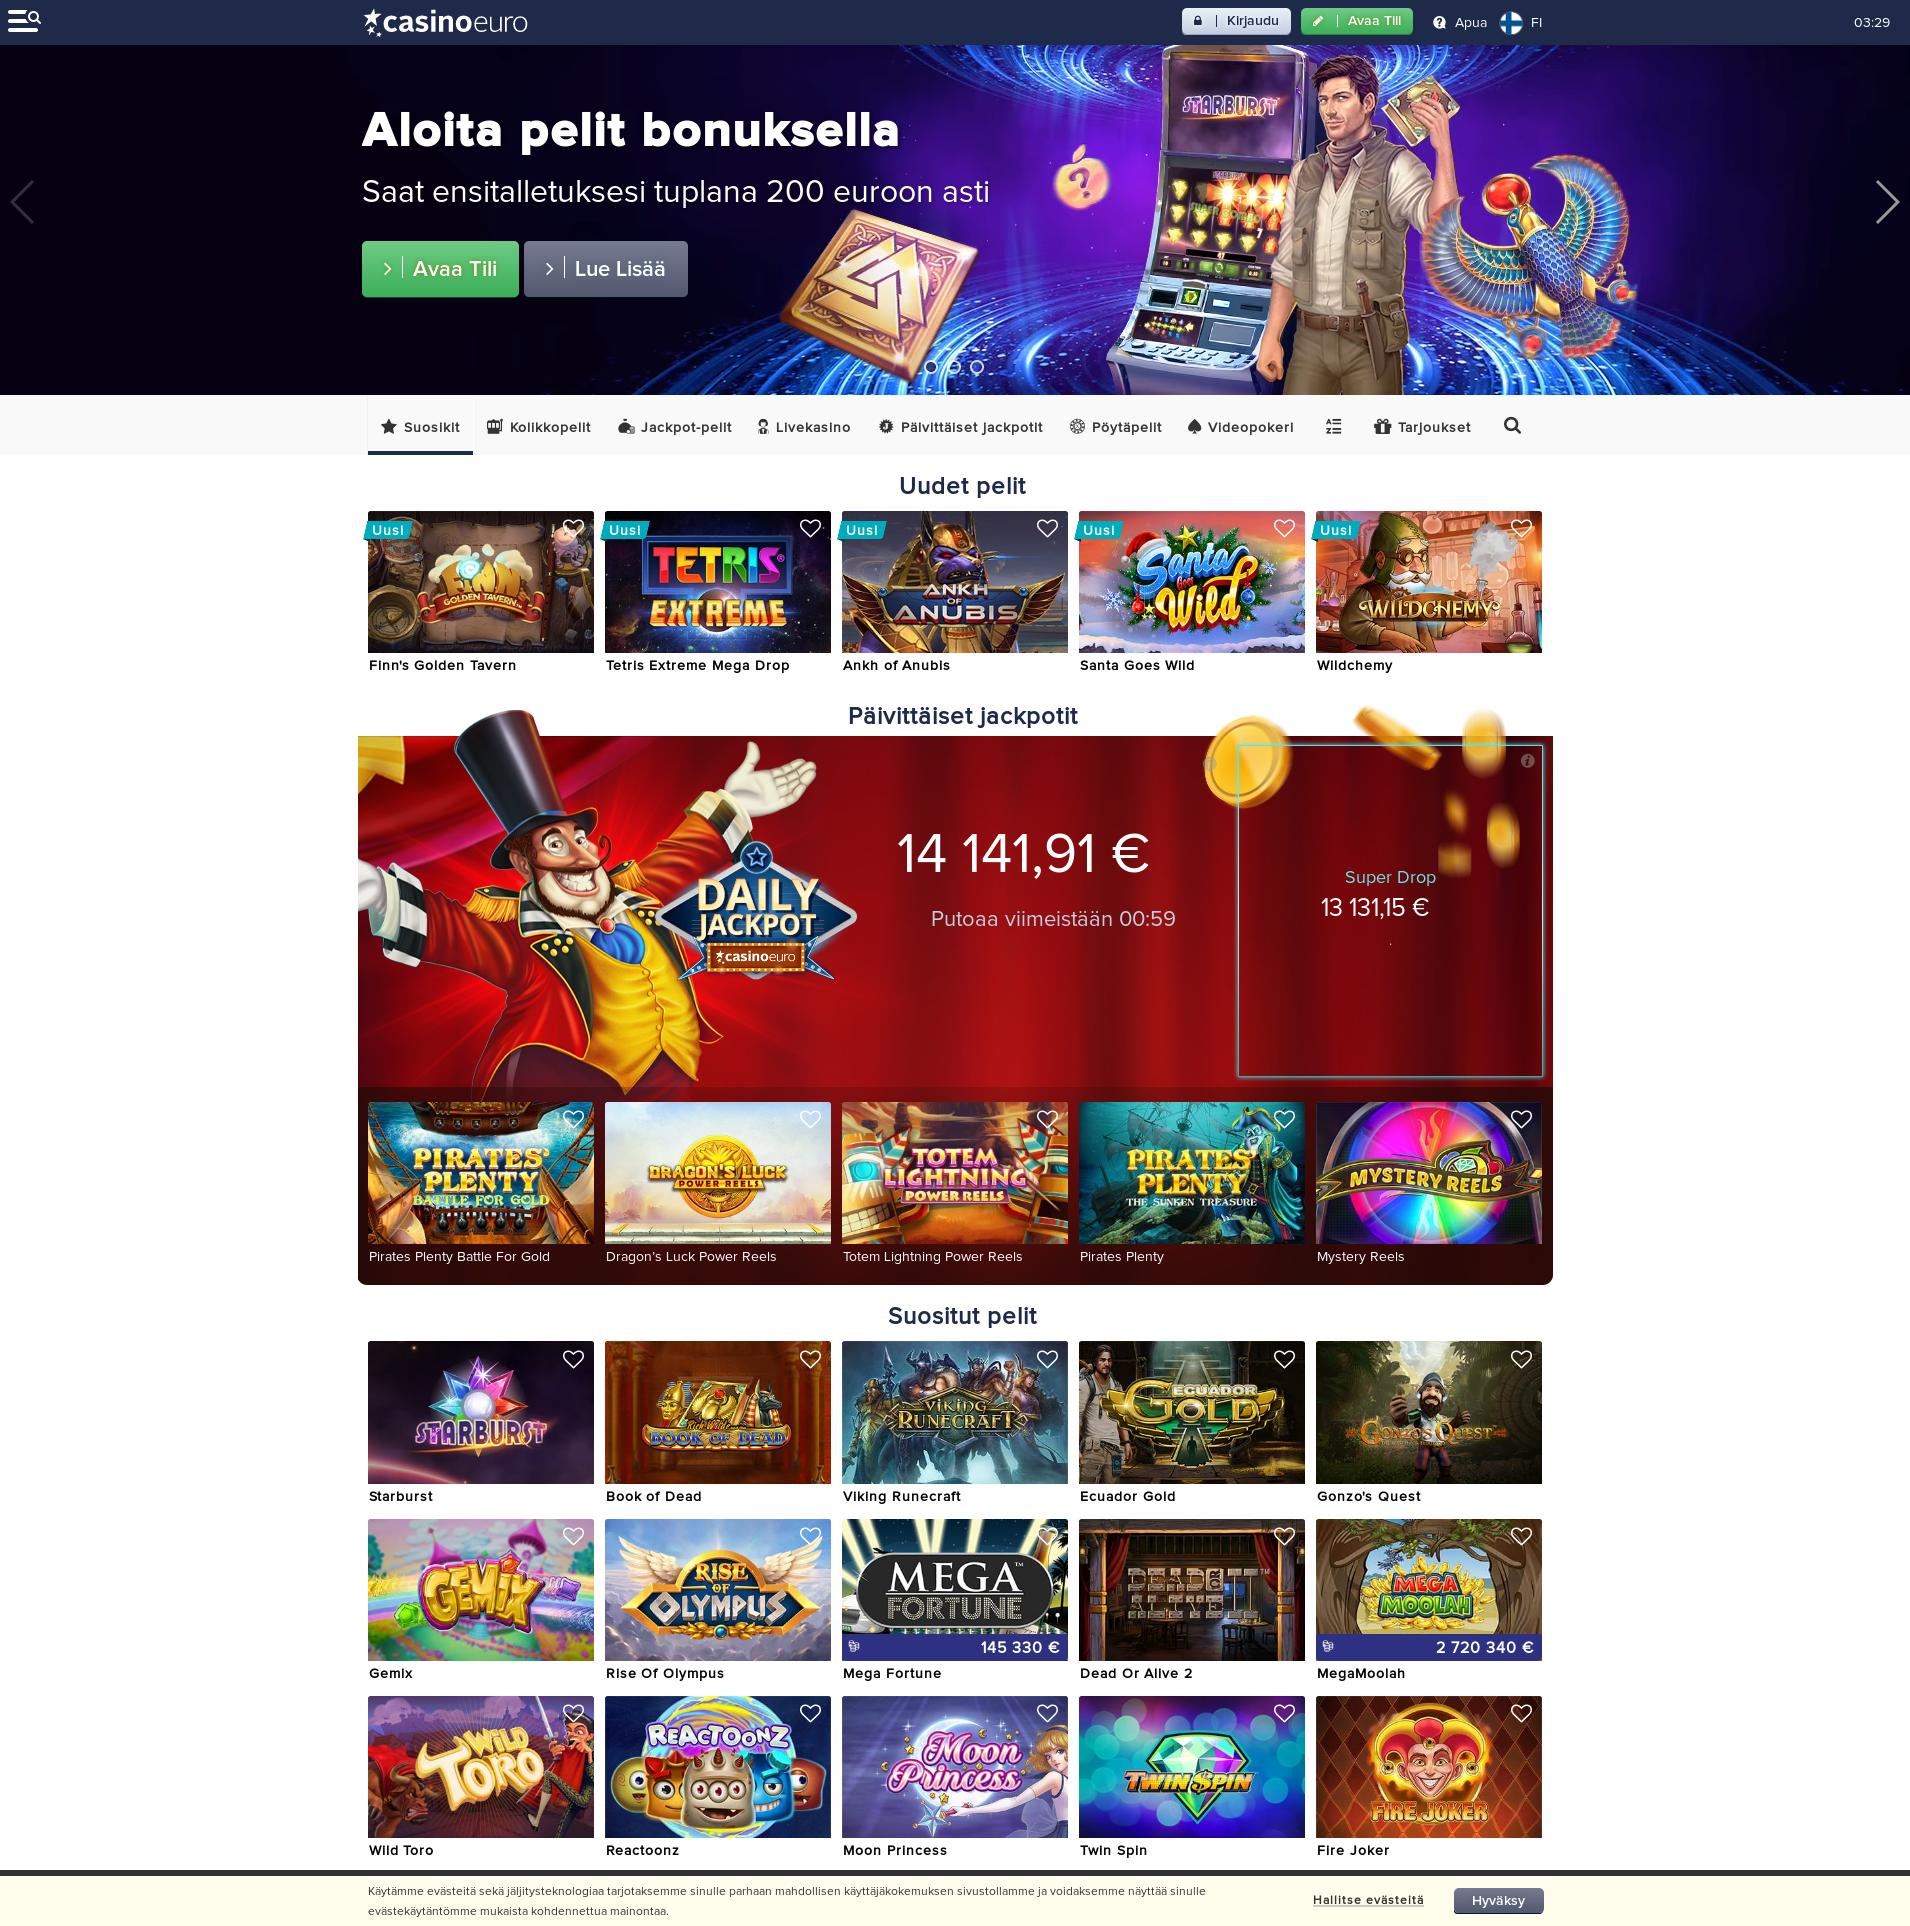 Casino screen Lobby 2019-12-09 for Finland